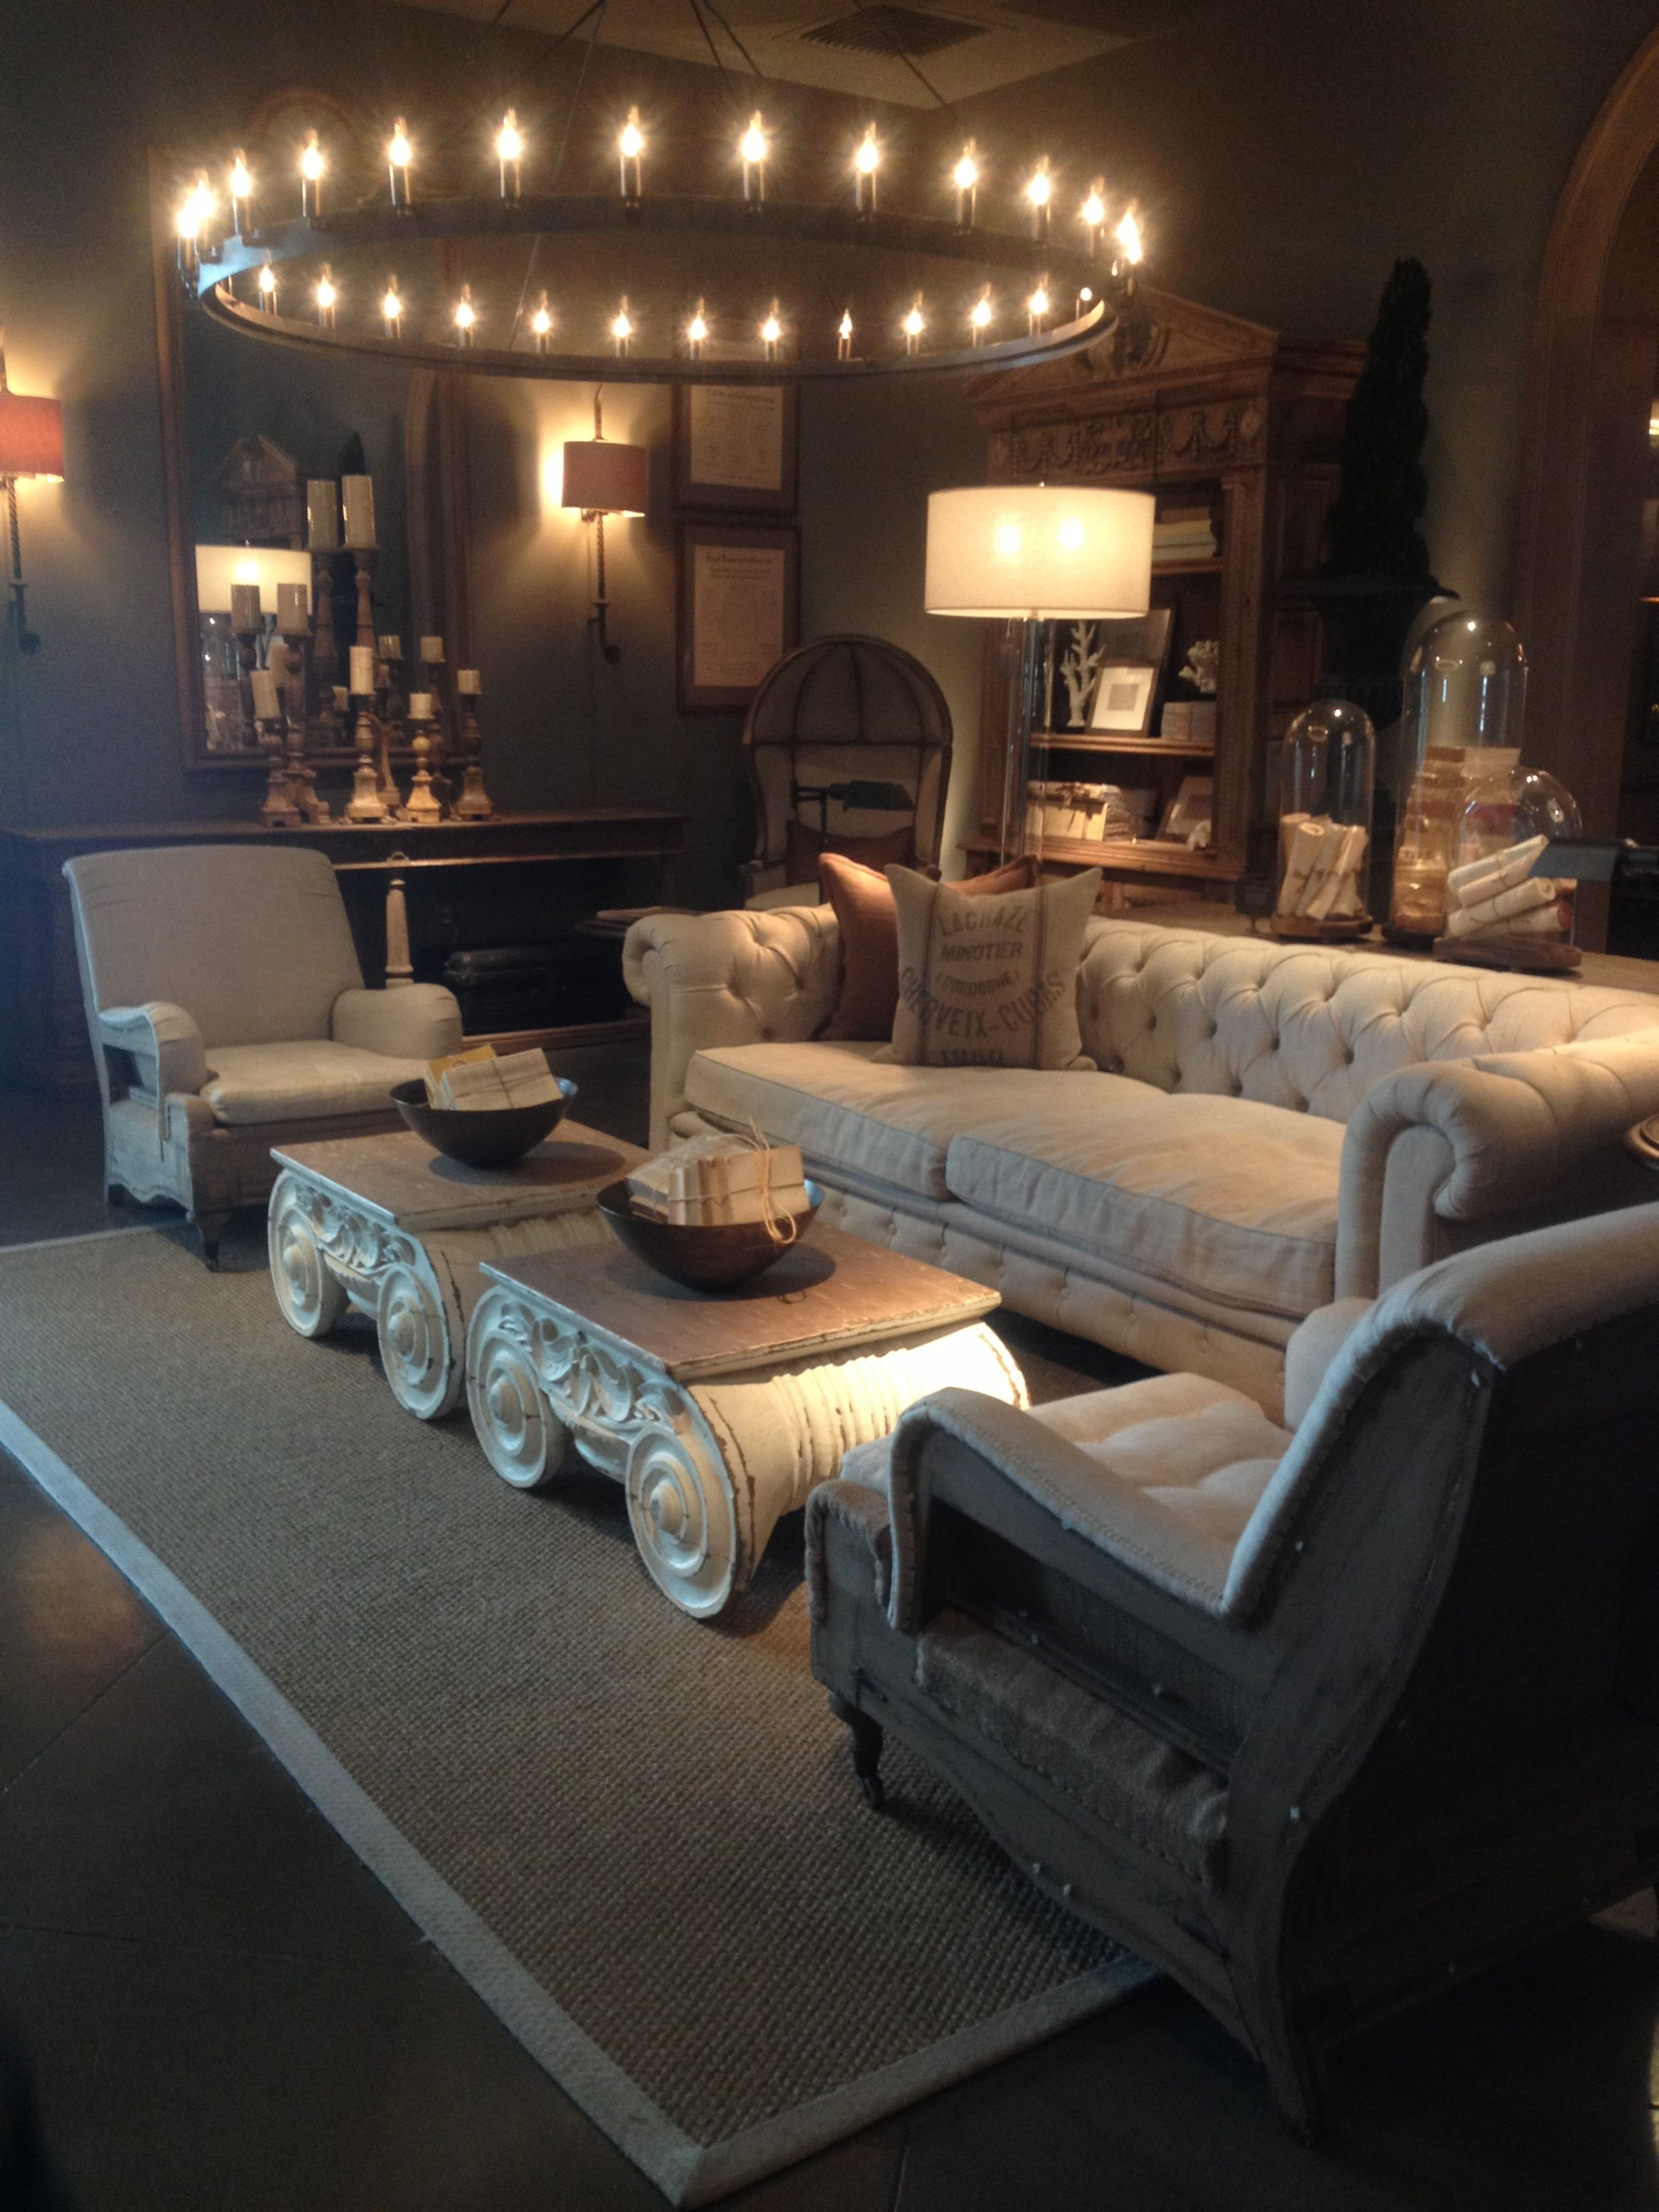 Chesterfield Wohnzimmer Restoration Hardware Living Room Dream Sofa Chesterfield Tufted